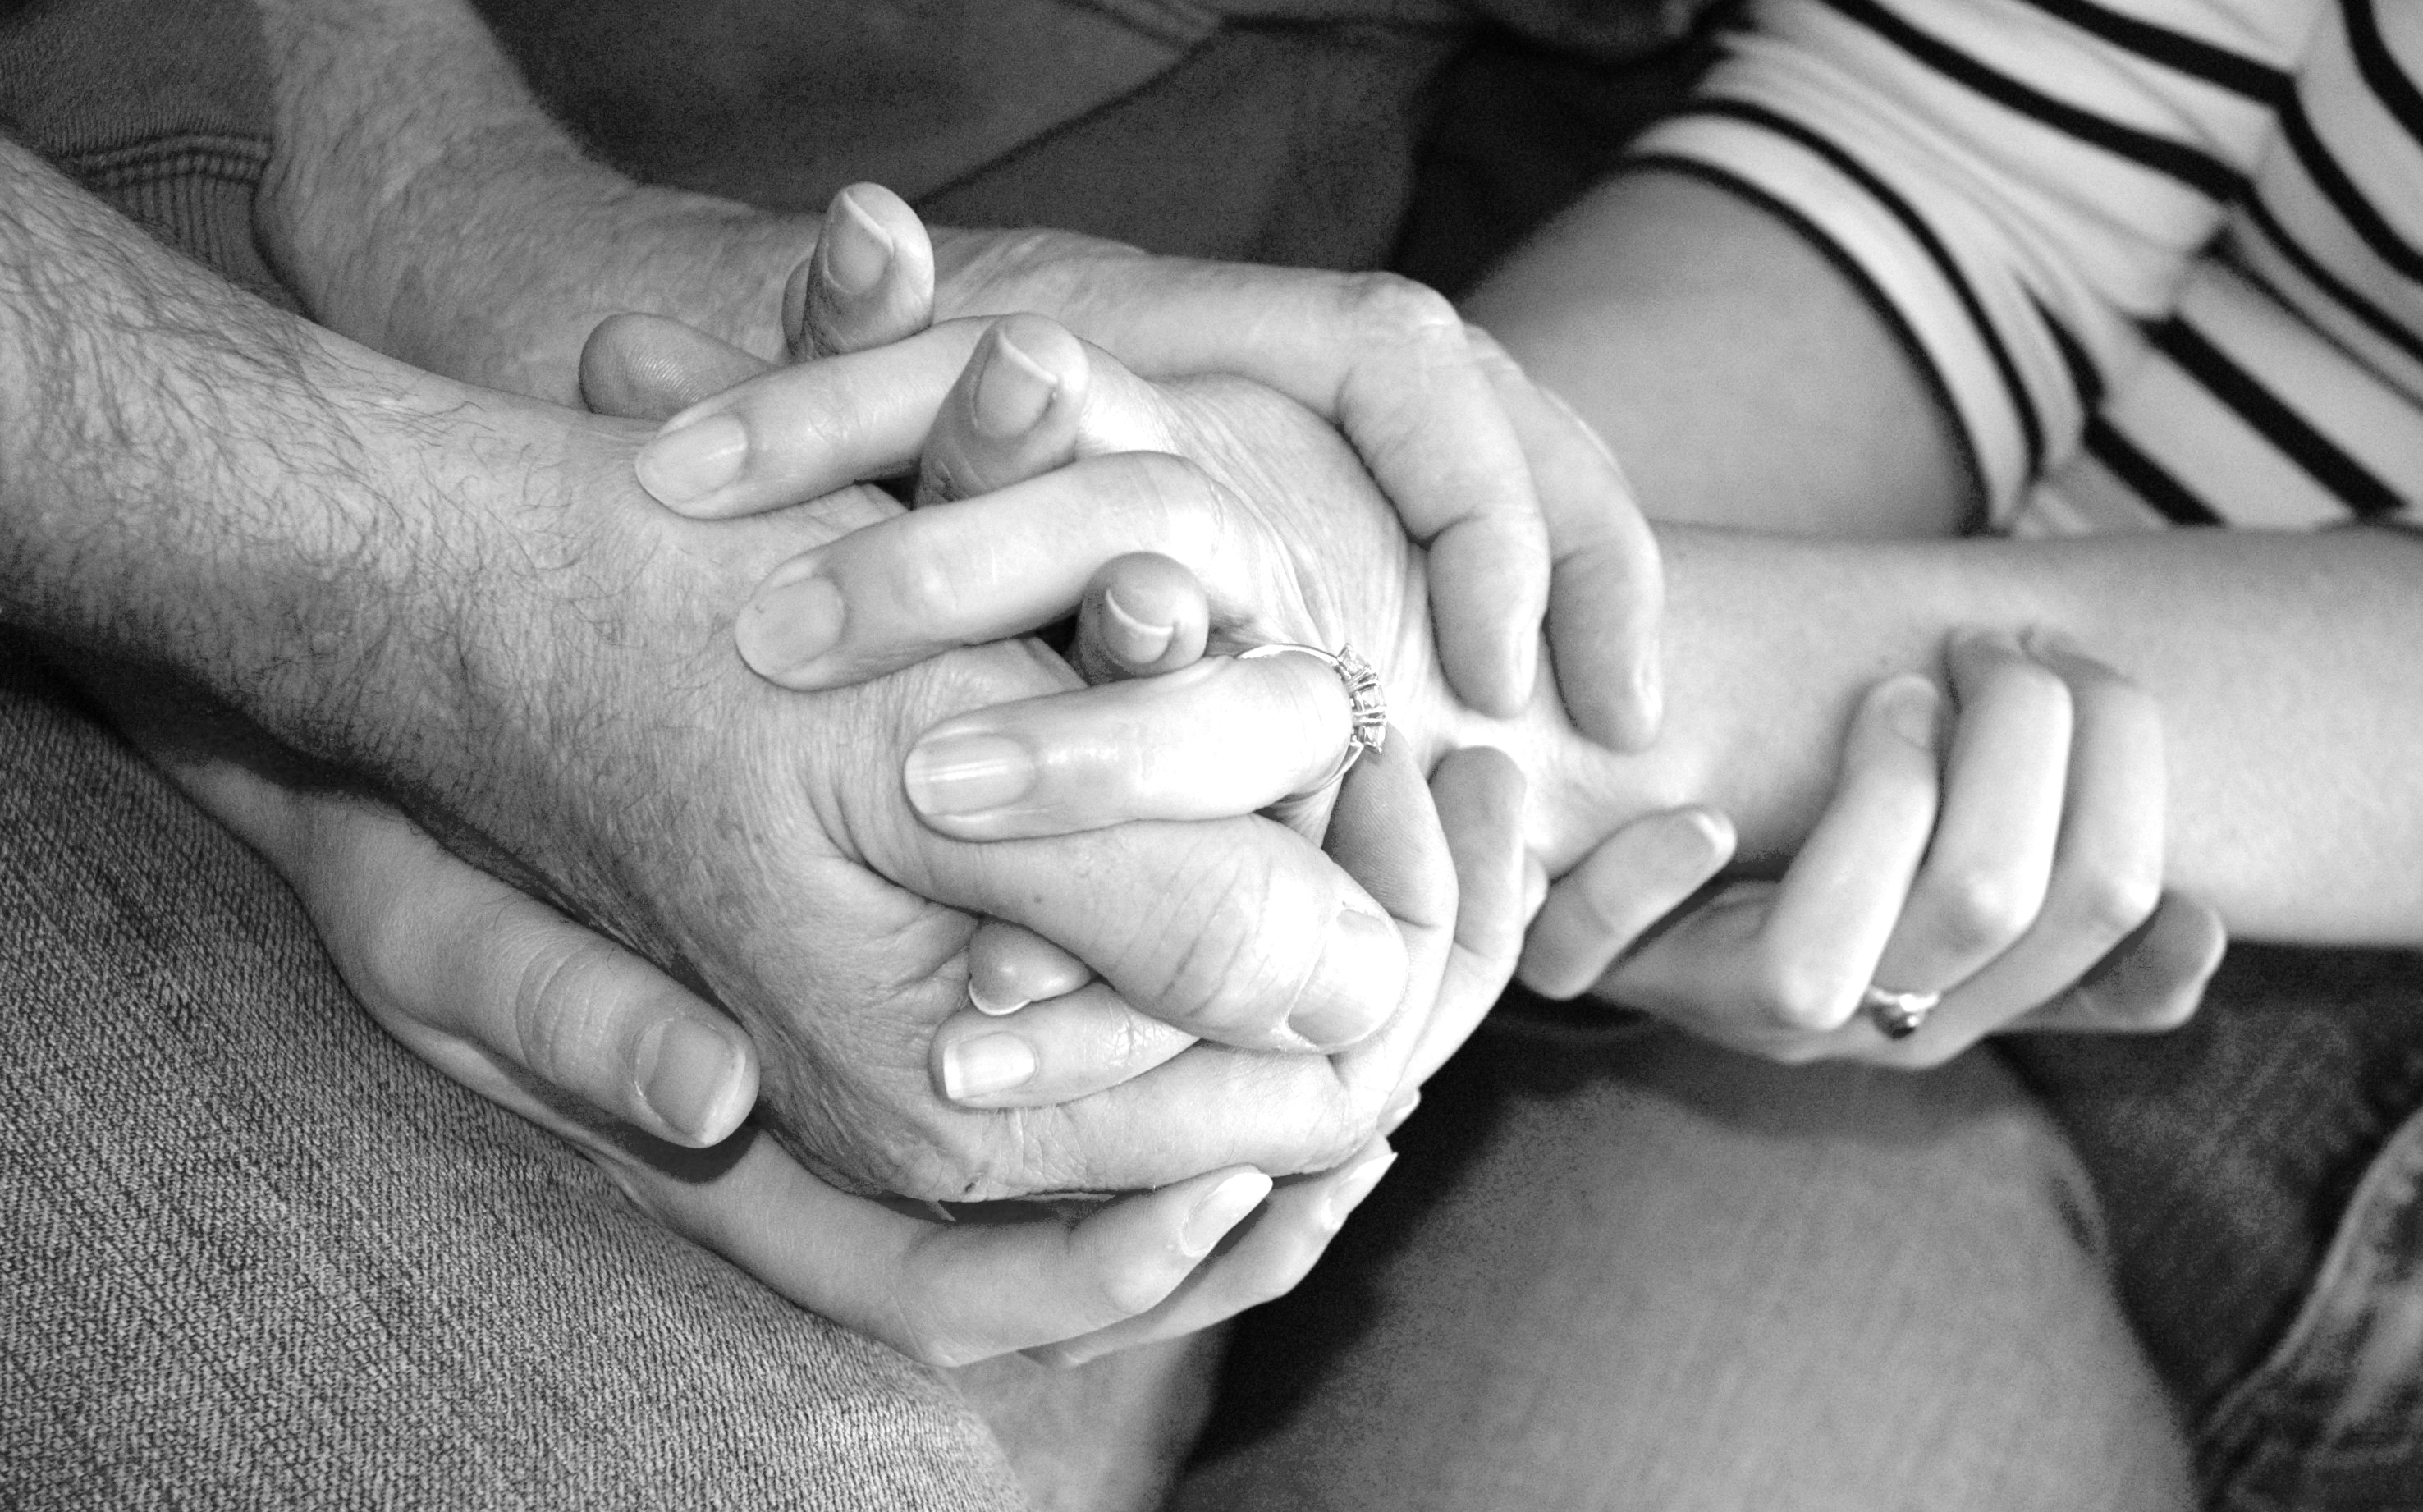 grief and loss - dealing with a loved ones death